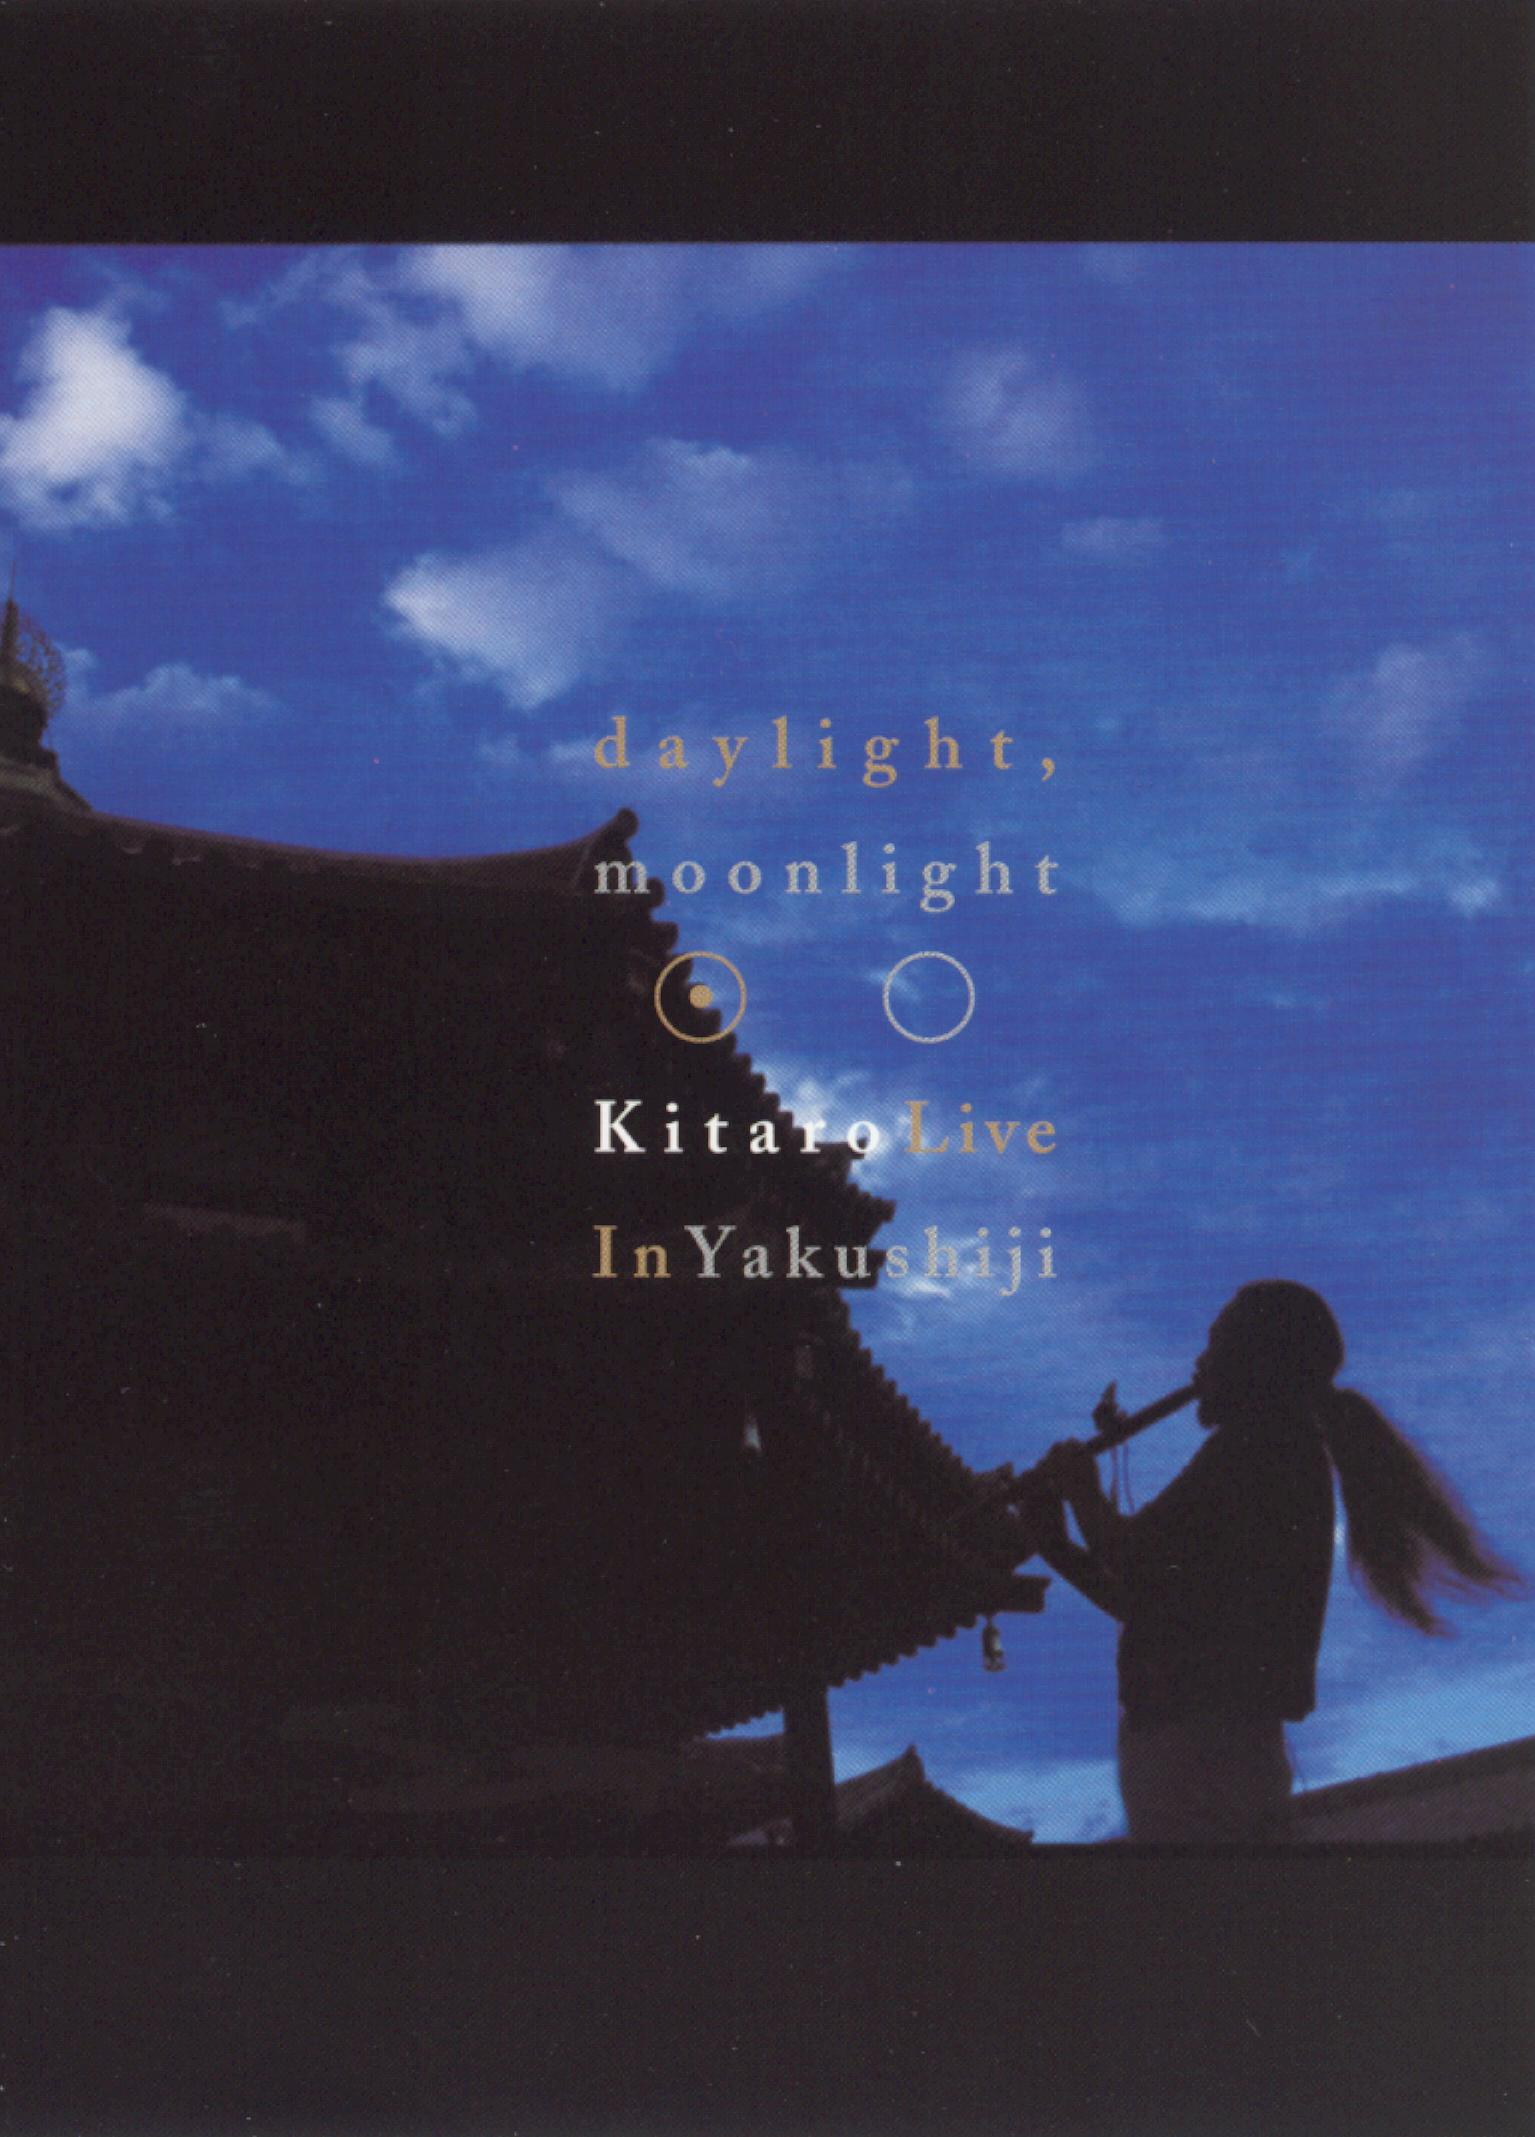 Kitaro: Daylight, Moonlight - Live in Yakushiji